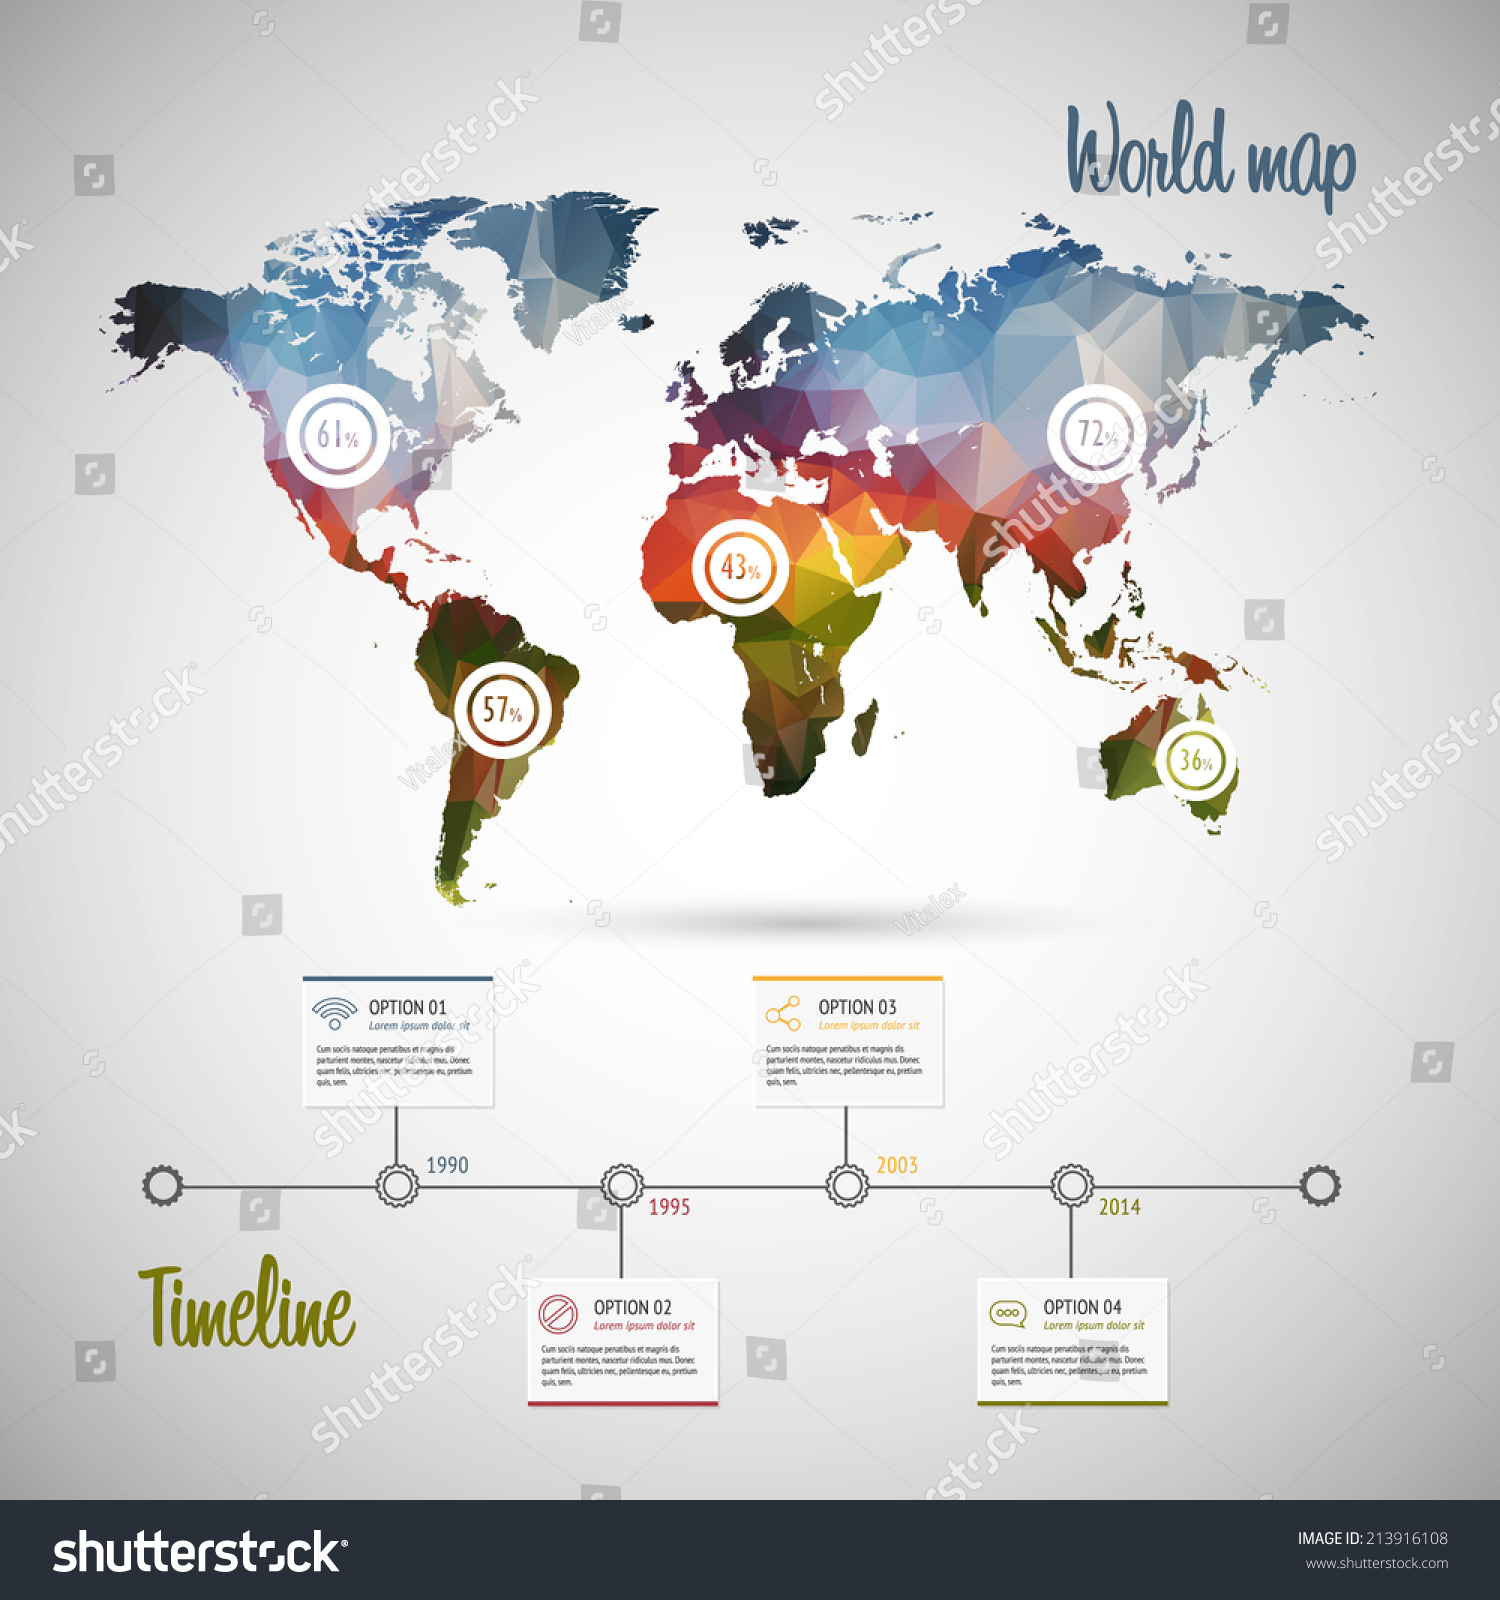 Royalty free world map infographic template showing 213916108 world map infographic template showing the demographic areas with proportionate percentages of statistics and modern timeline gumiabroncs Gallery